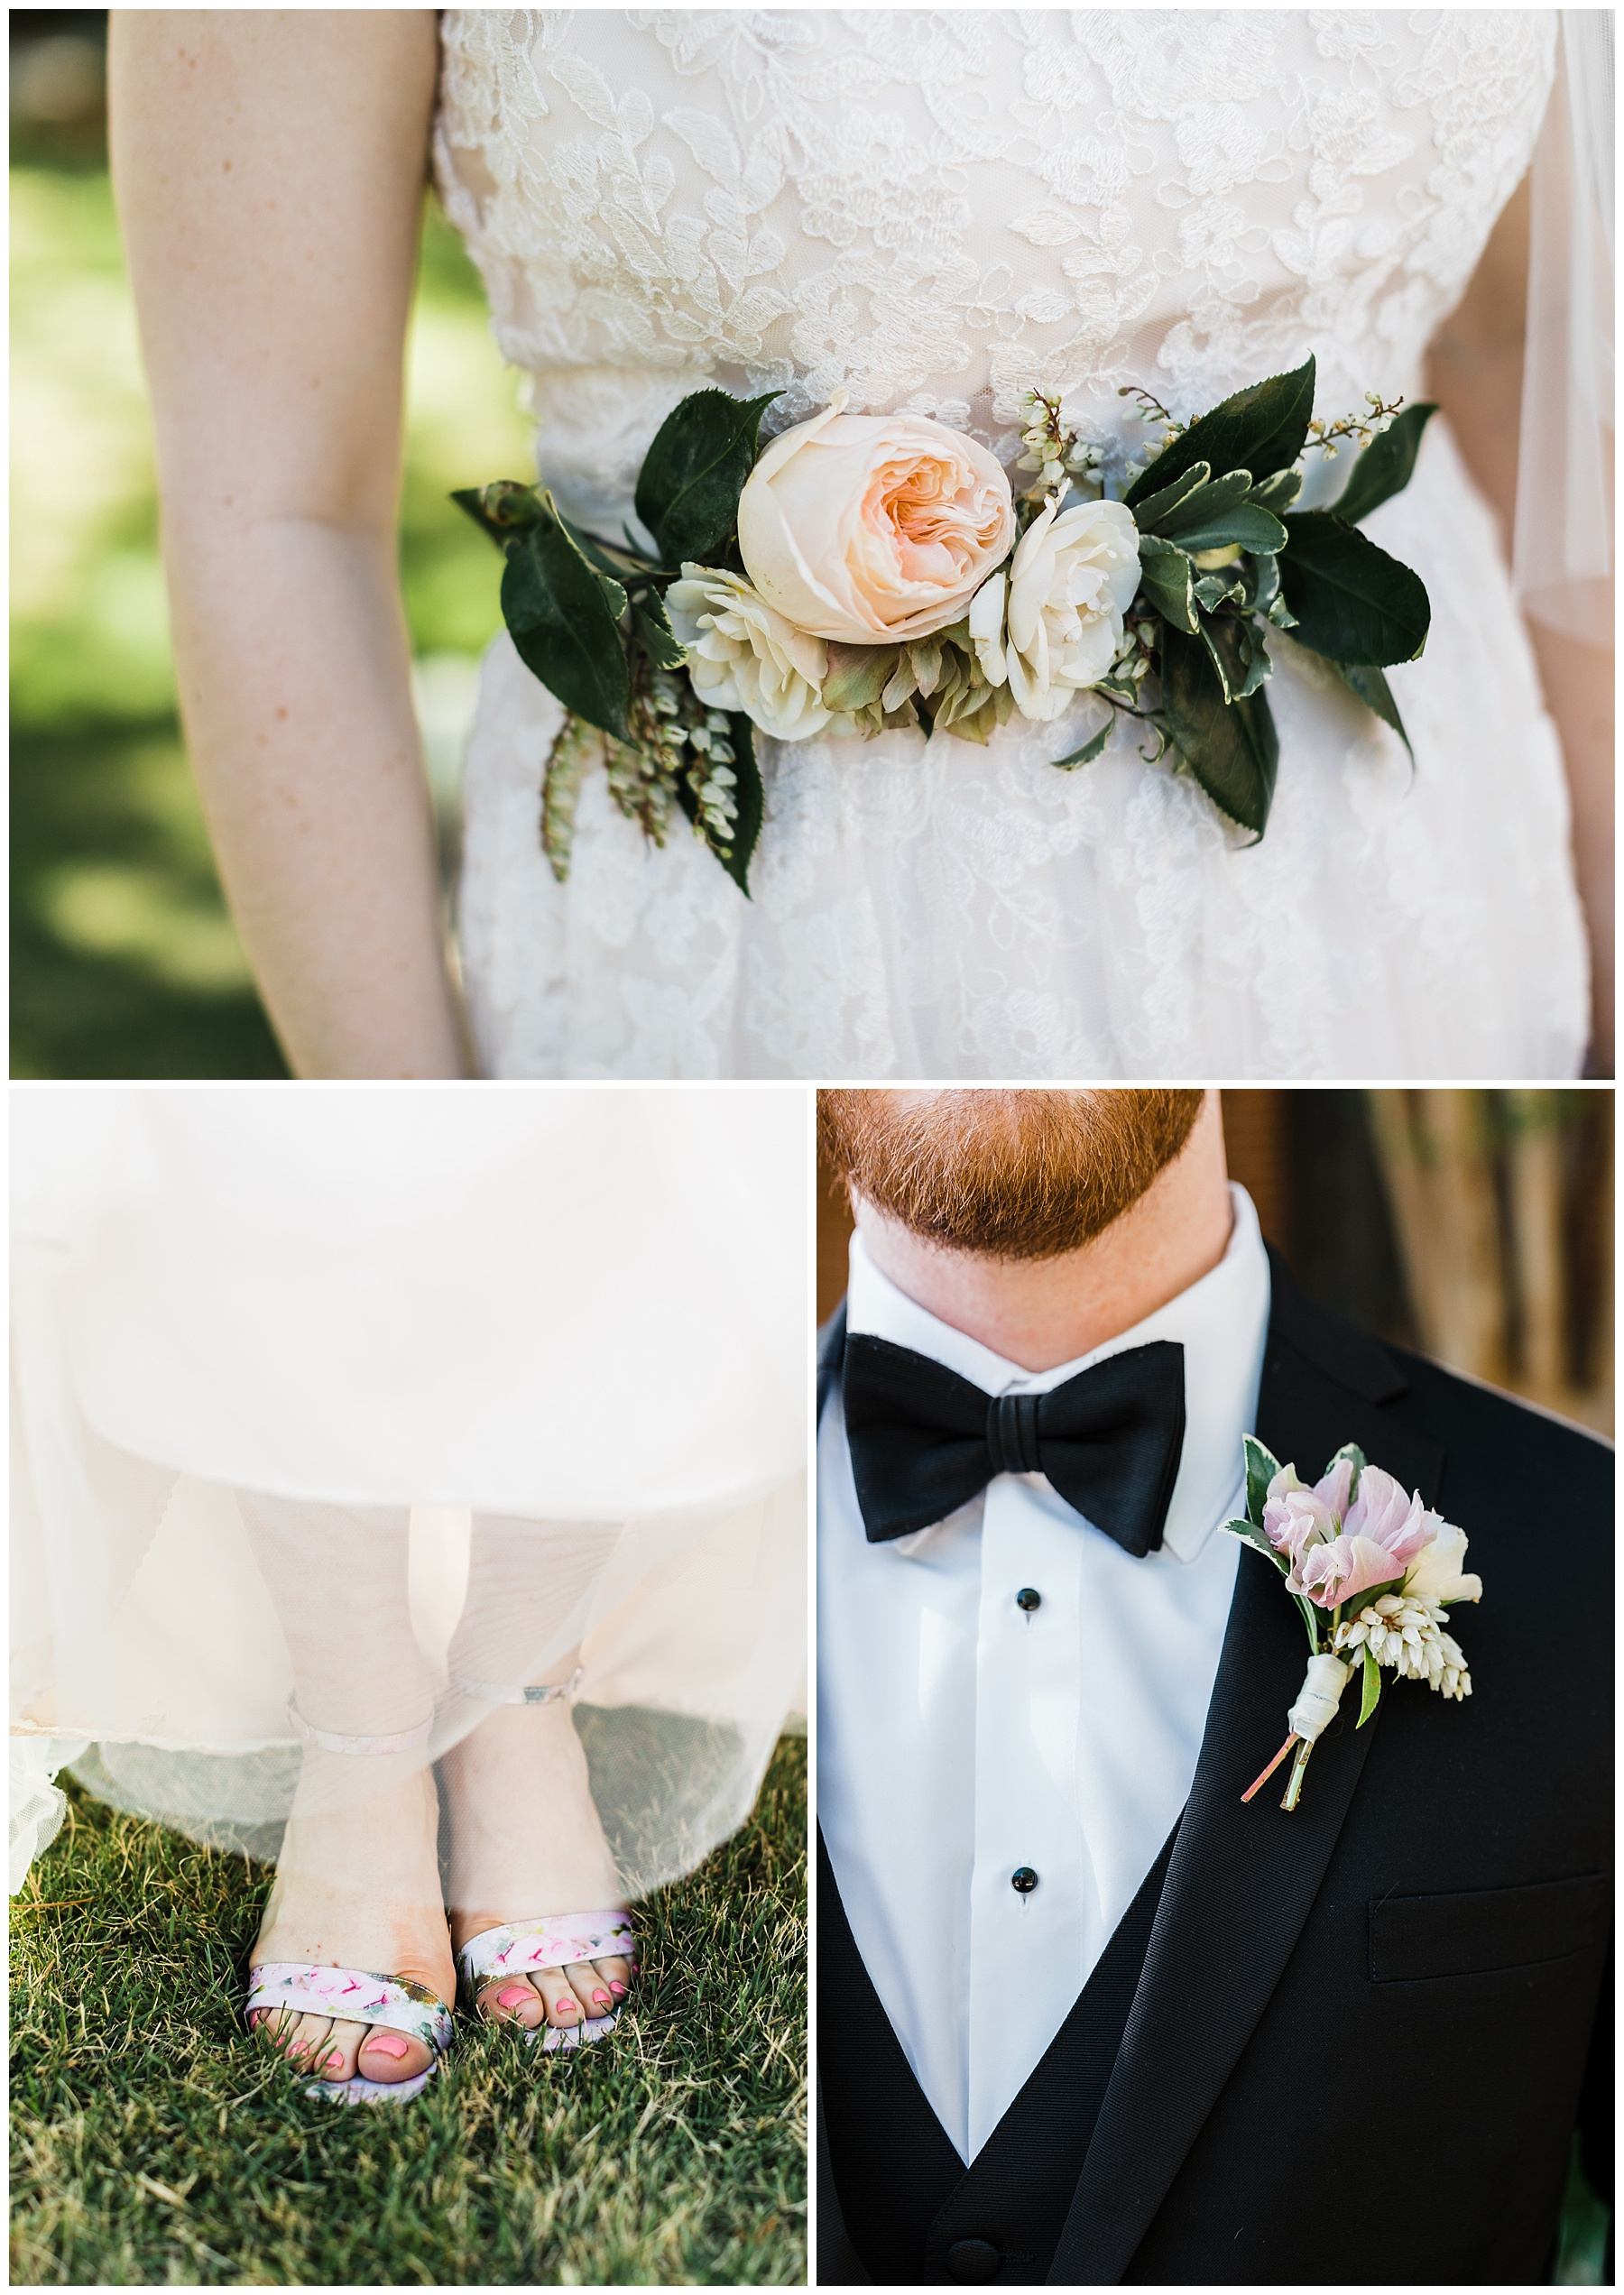 2018-02-27_0002 LeeAnne & William: A Birmingham wedding full of Southern Hospitality Blog Invision Events Weddings    invision_events, birmingham_al, auburn_al, alabama, atlanta_ga, atl, georgia, wedding_planner, wedding_designer, weddings, photography, wedding_planning